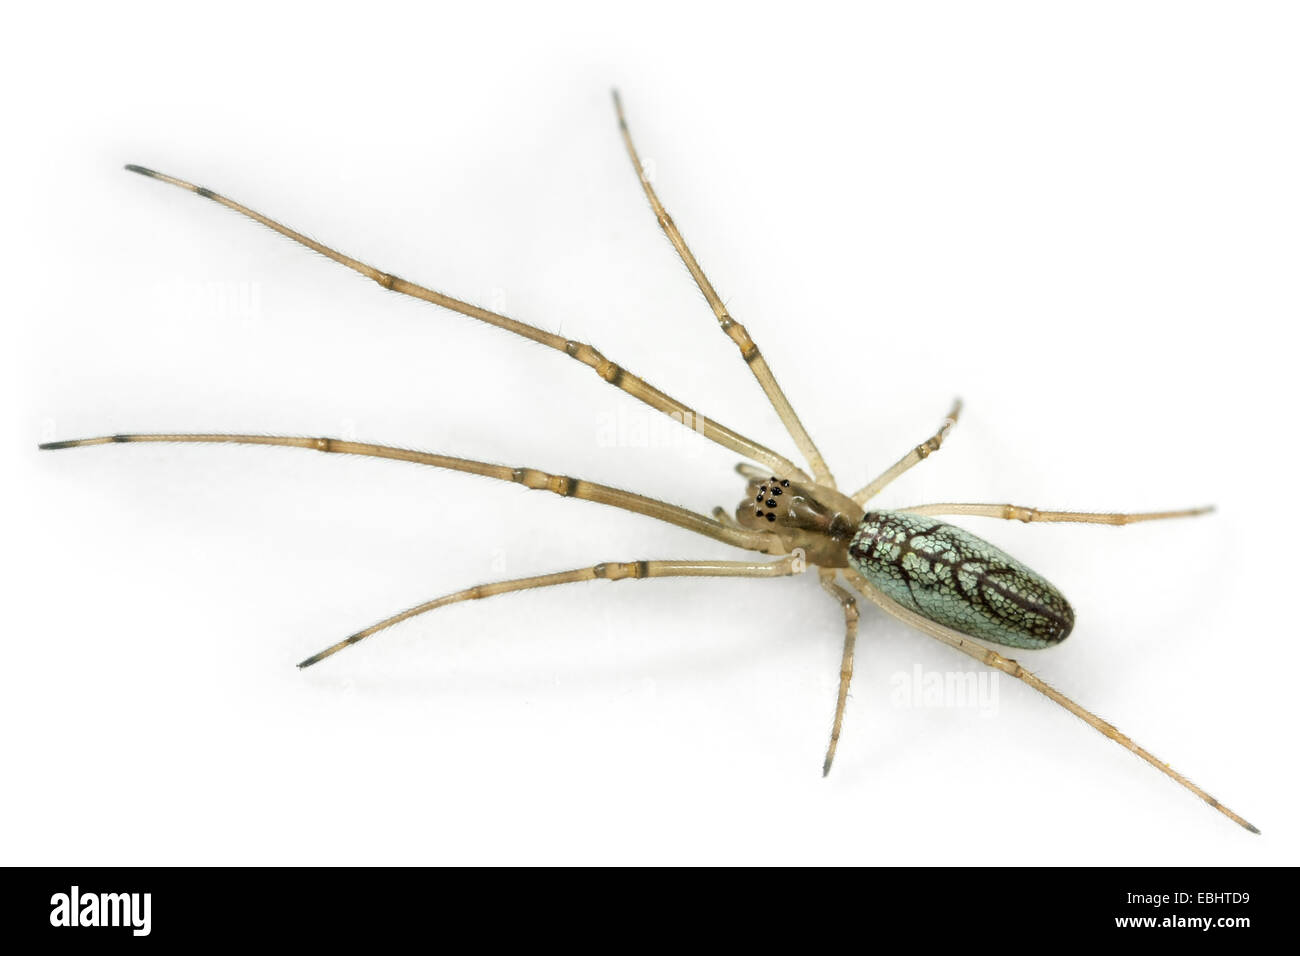 A female longjawed orbweaver (Tetragnatha pinicola) on a white background. Longjawed orbweavers are part of the - Stock Image